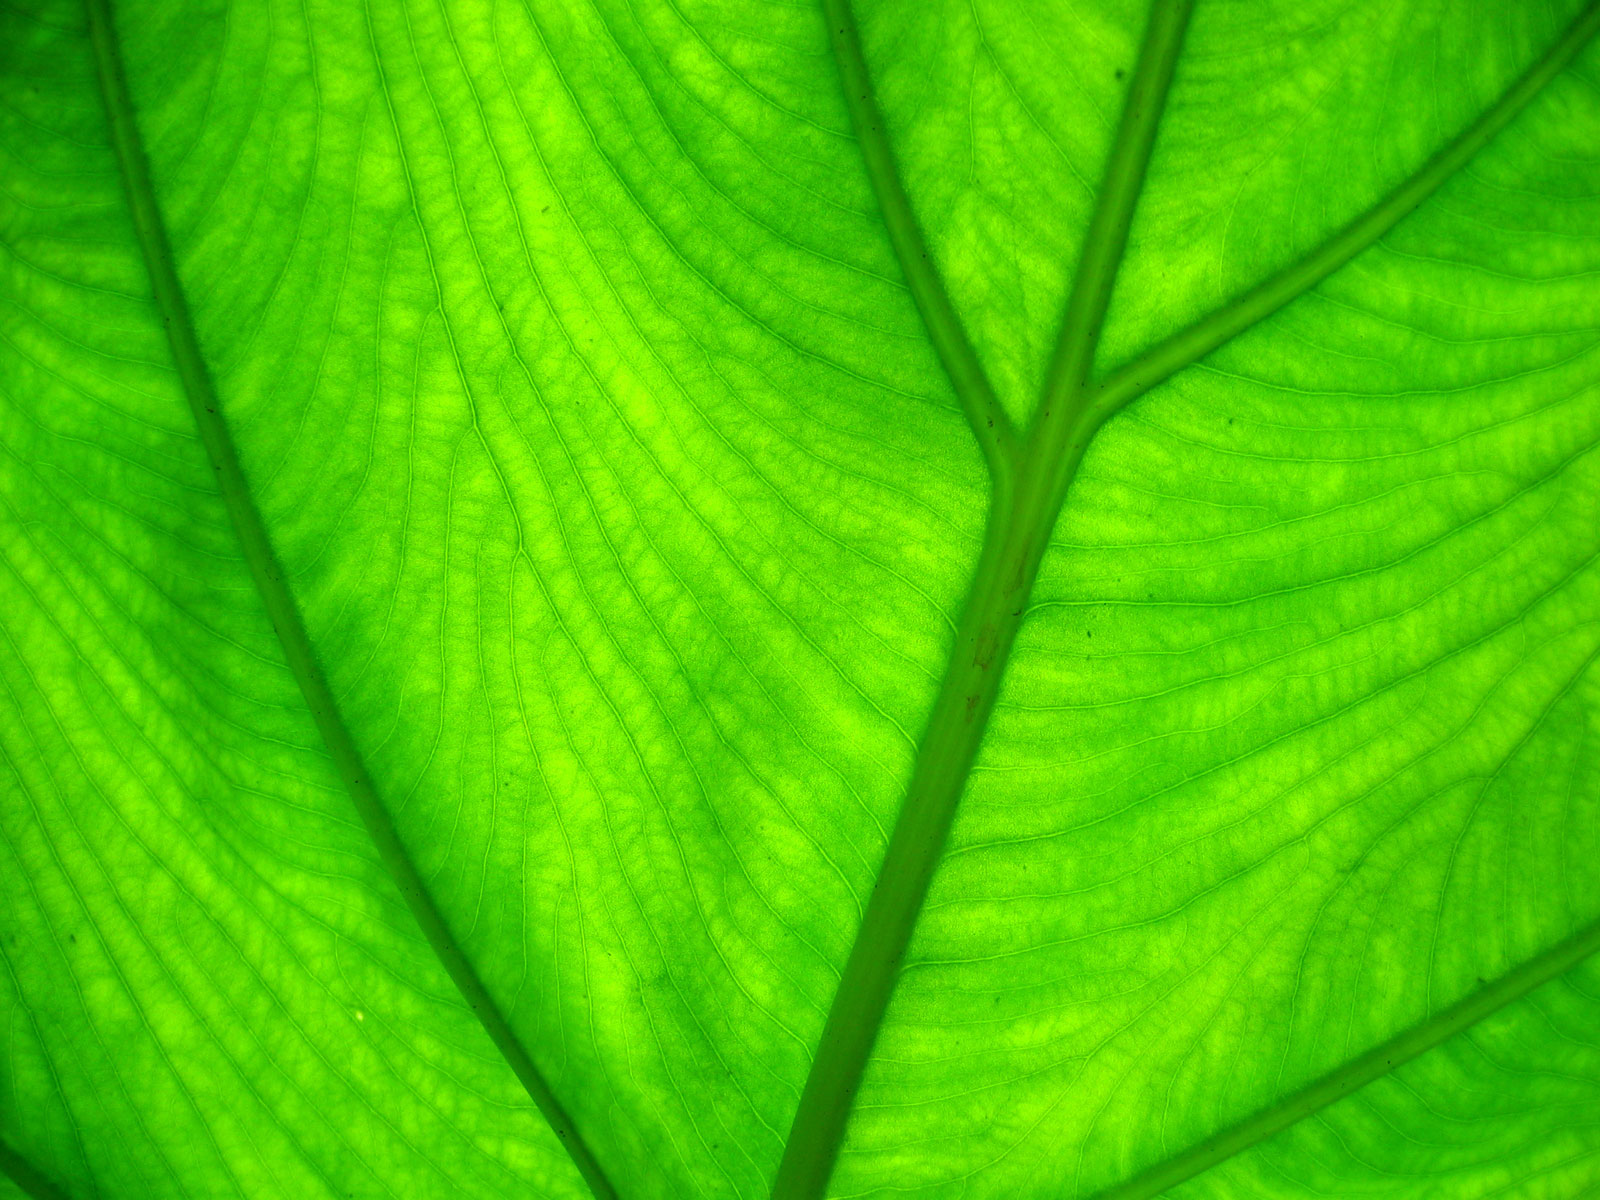 Black And White Wallpapers Green Leaf Wallpaper